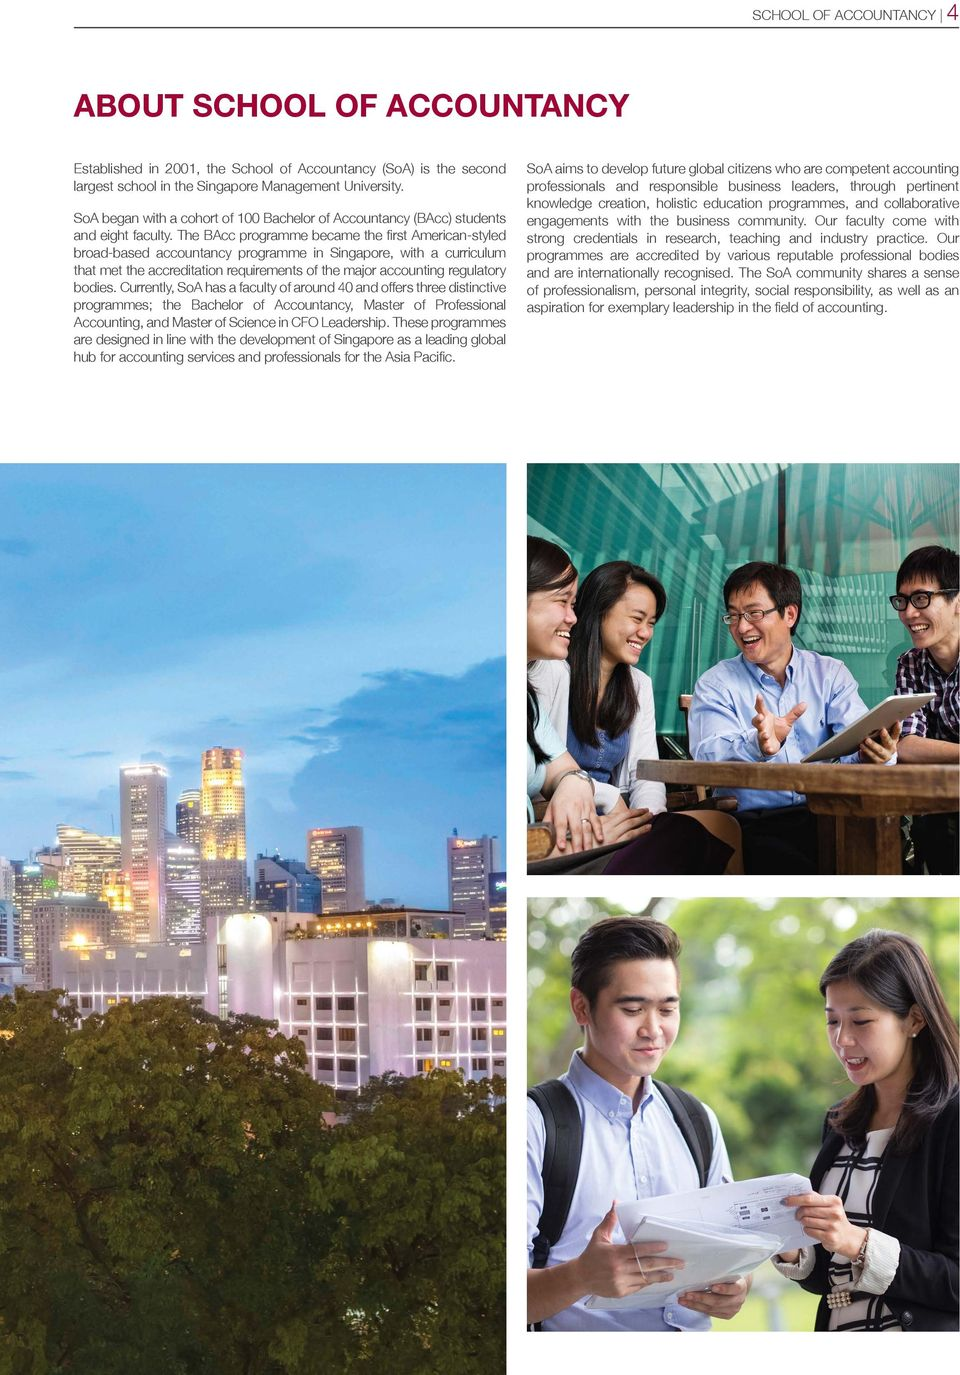 The BAcc programme became the first American-styled broad-based accountancy programme in Singapore, with a curriculum that met the accreditation requirements of the major accounting regulatory bodies.